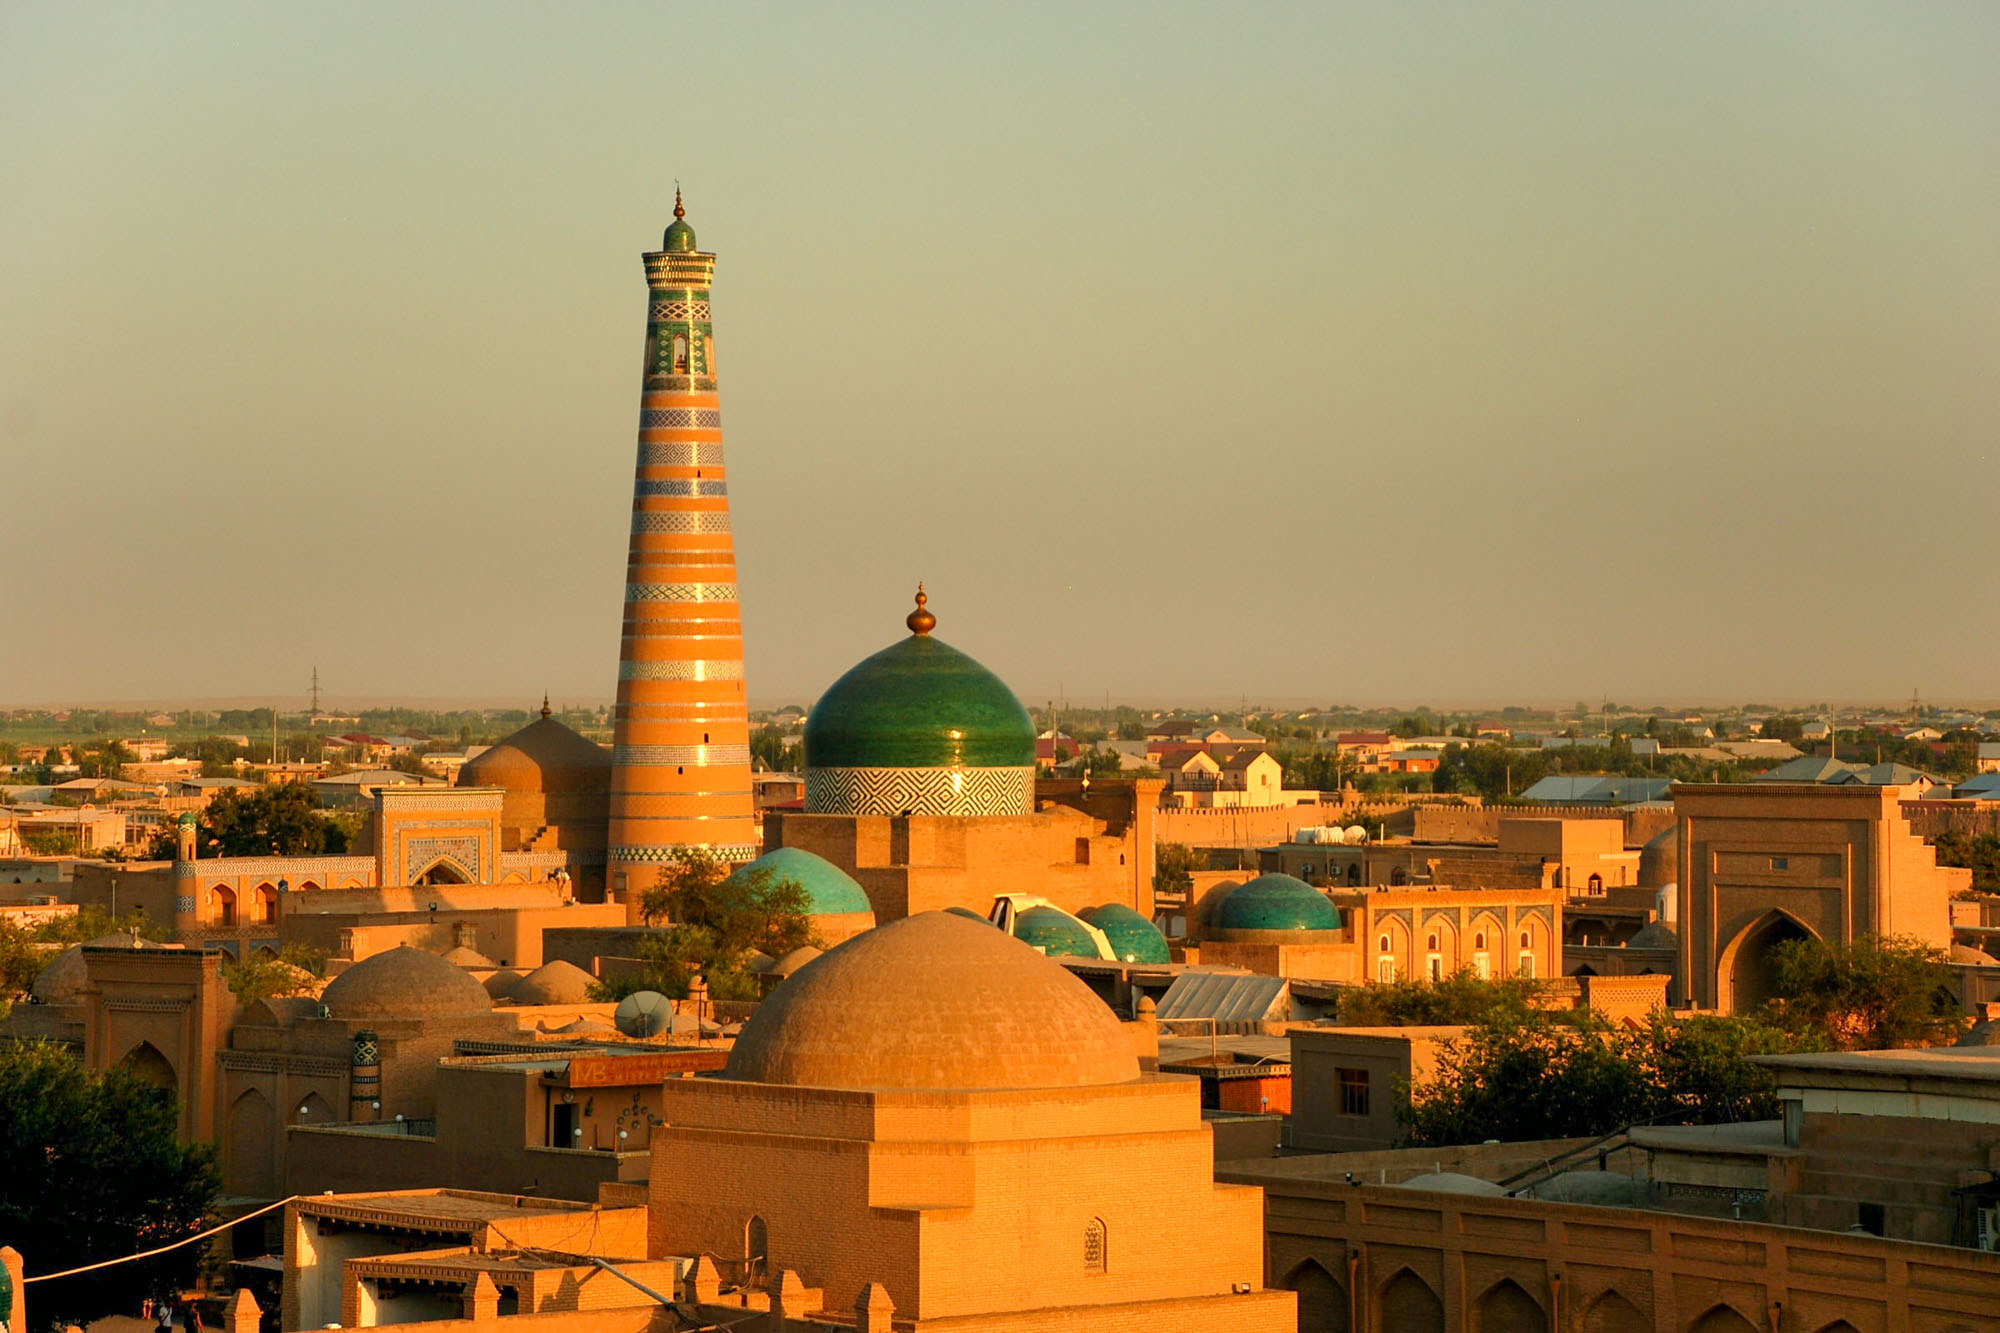 khiva. Western & Central Asia's Most Walkable Cities